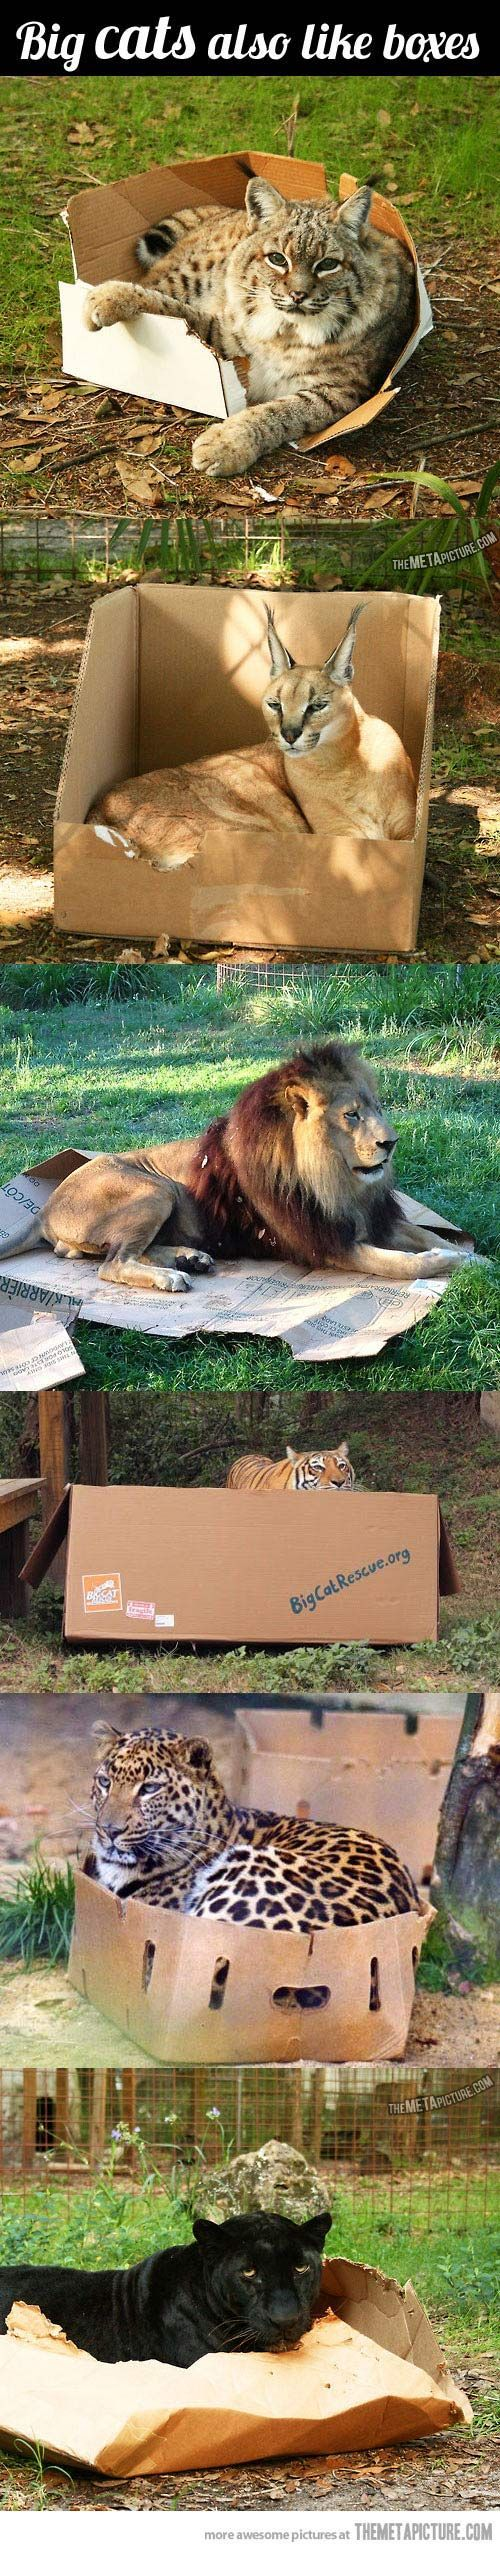 Big cats are just cats - they also love boxes! I love the lions box is completely crushed.